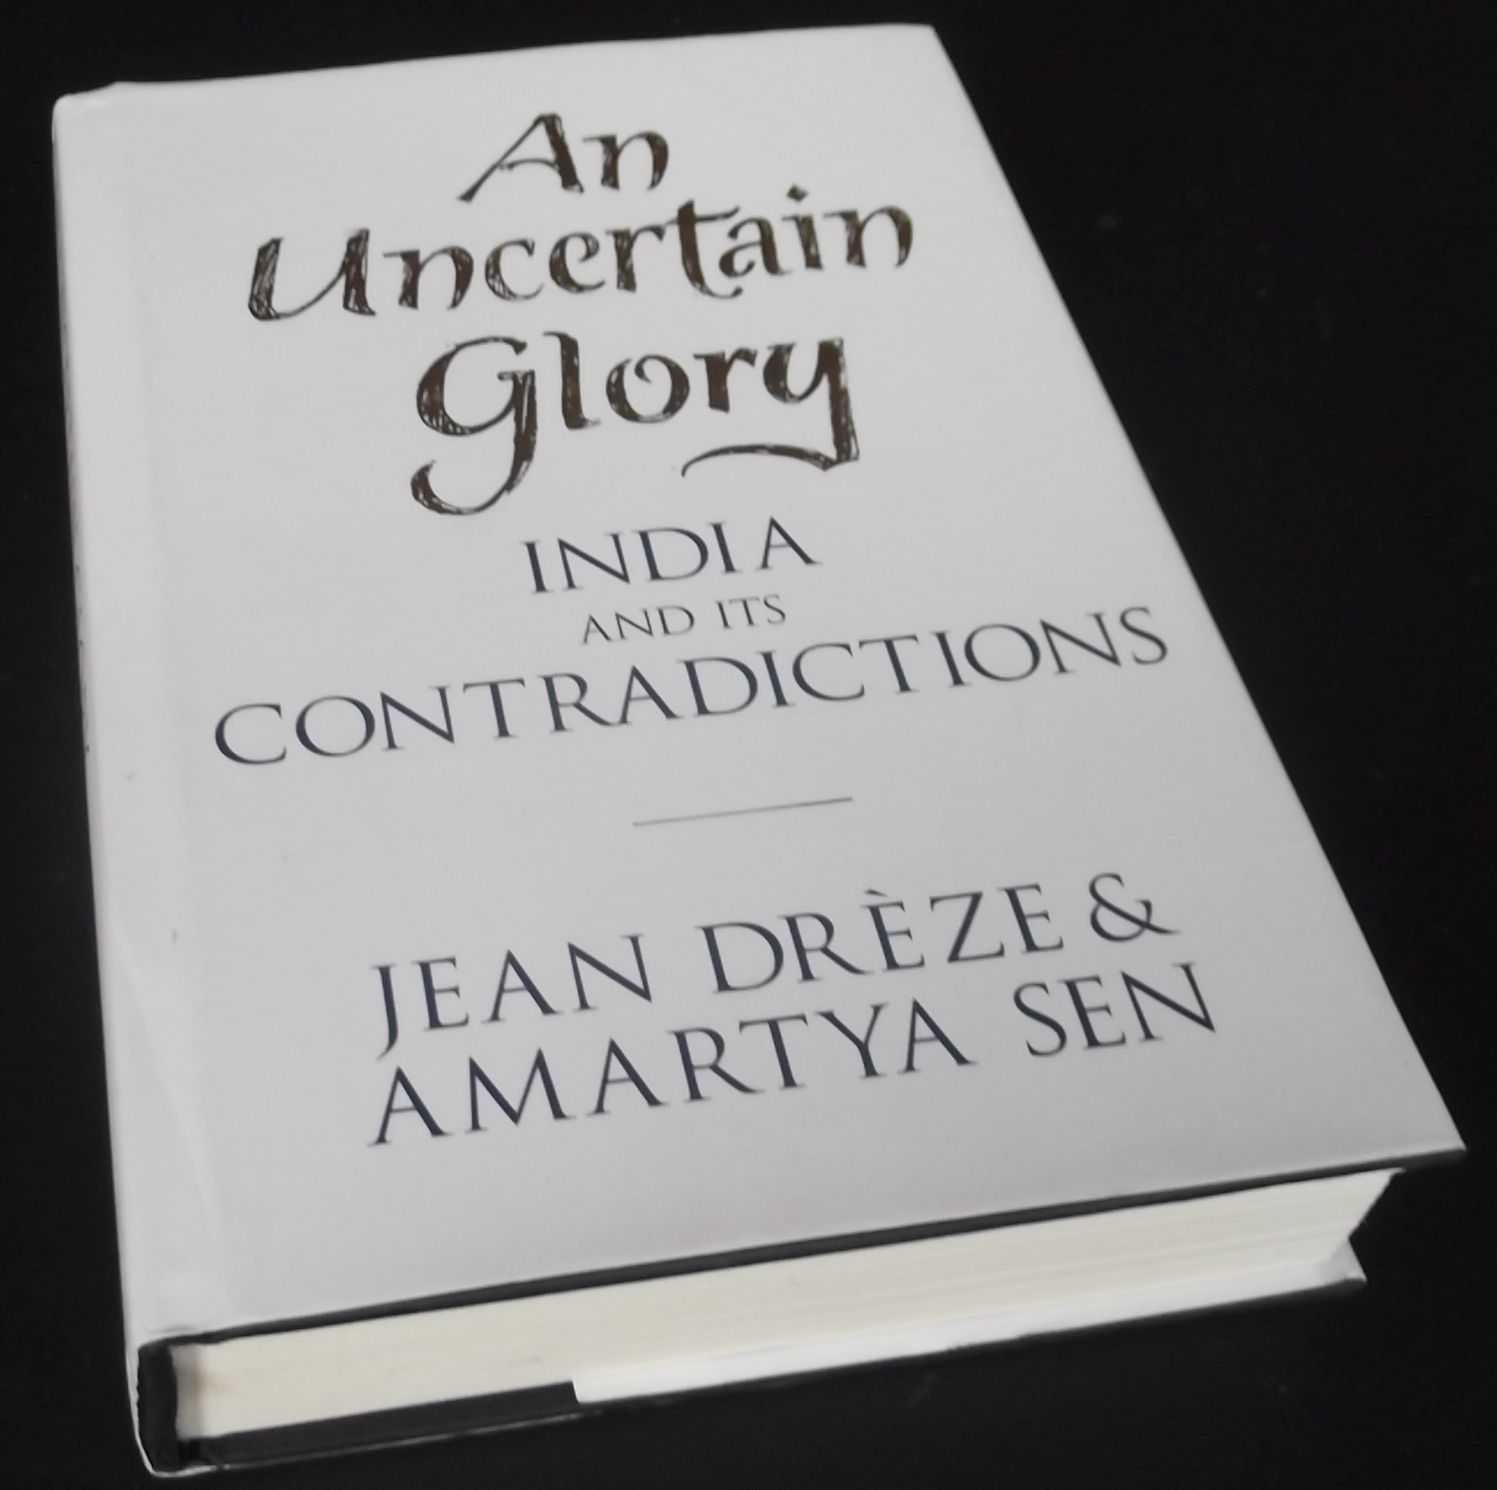 JEAN DREZE - An Uncertain Glory: India and its Contradictions